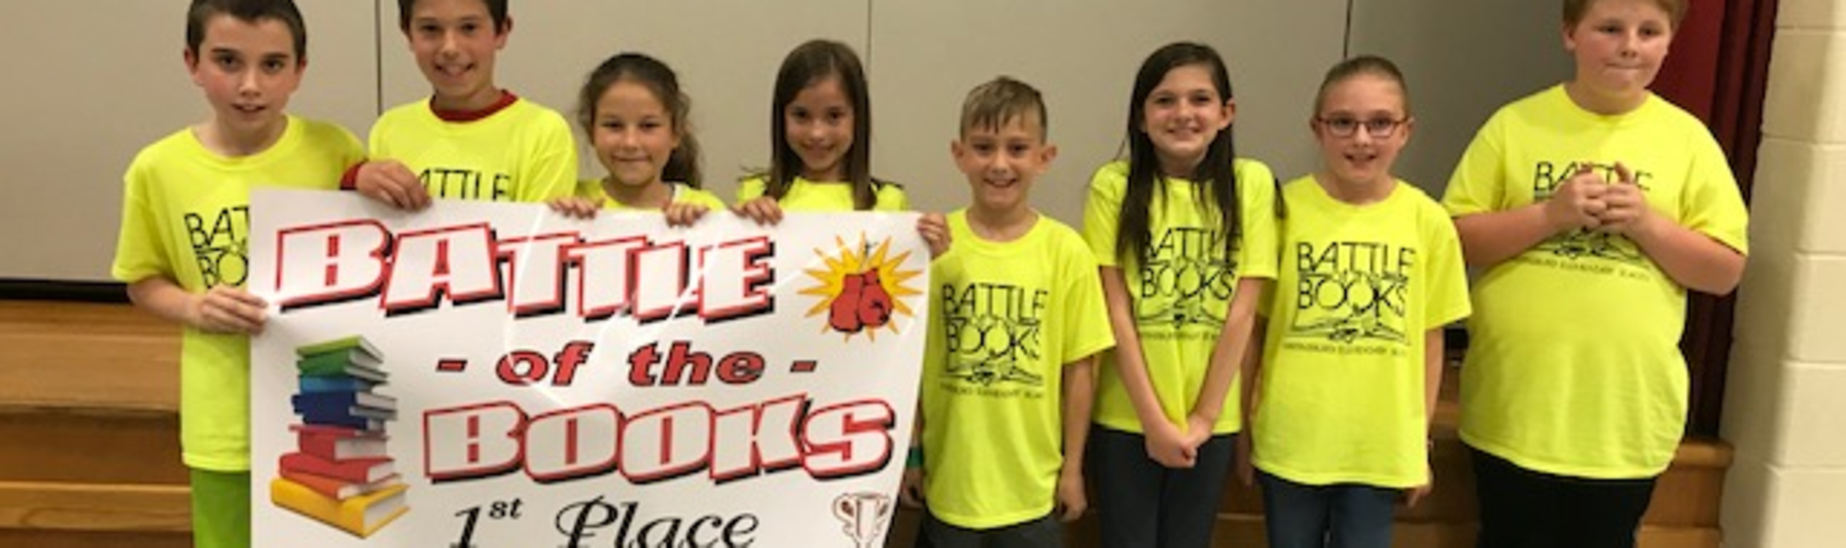 Battle of the Books 1st Place